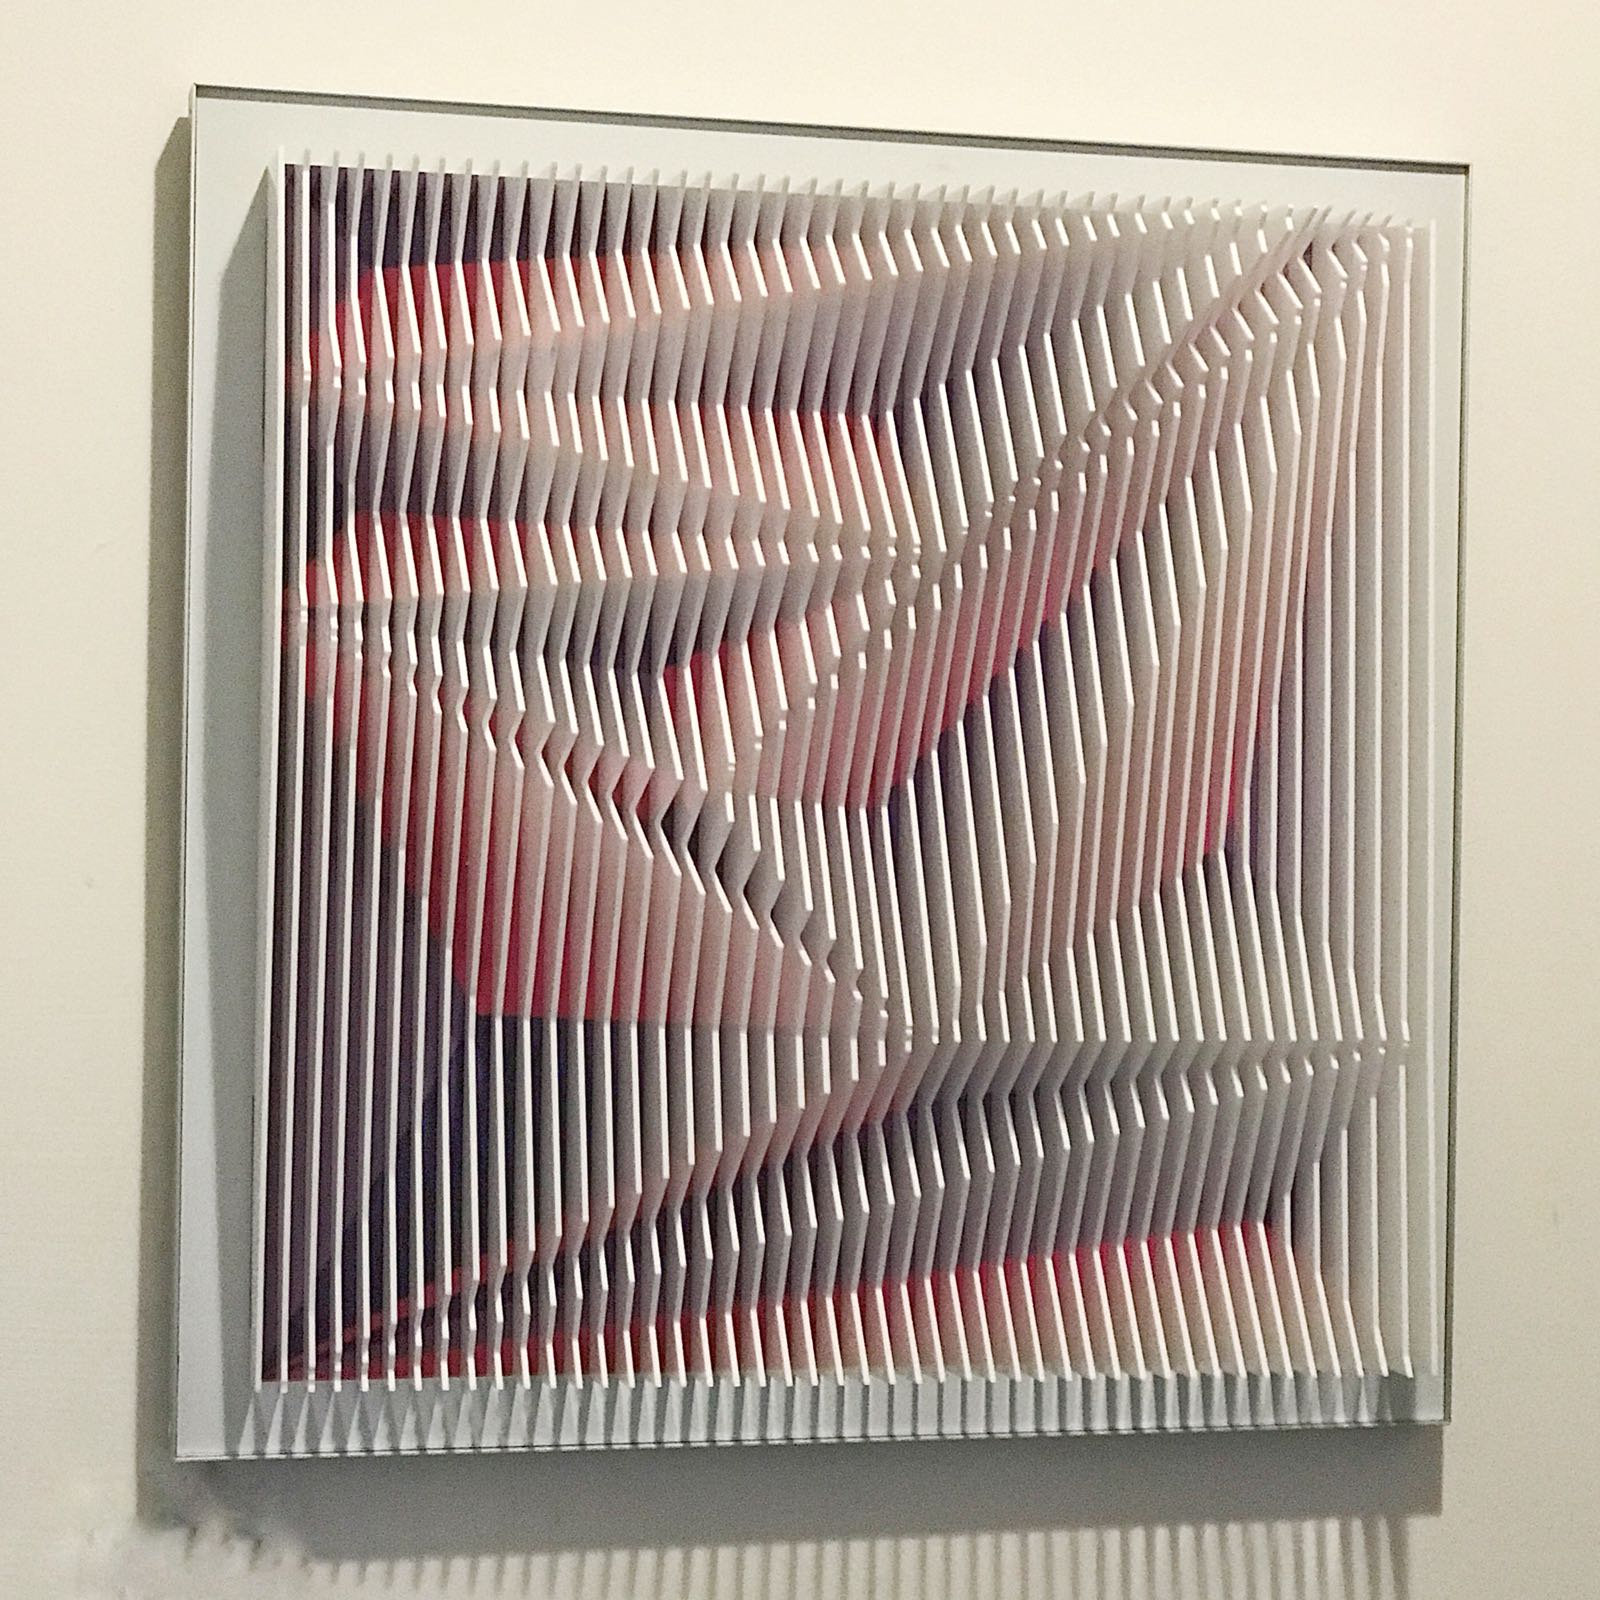 J. Margulis, The Leap PV, Lucite sheets mounted on UV aluminum print, 24 x 24, Courtesy Contempop